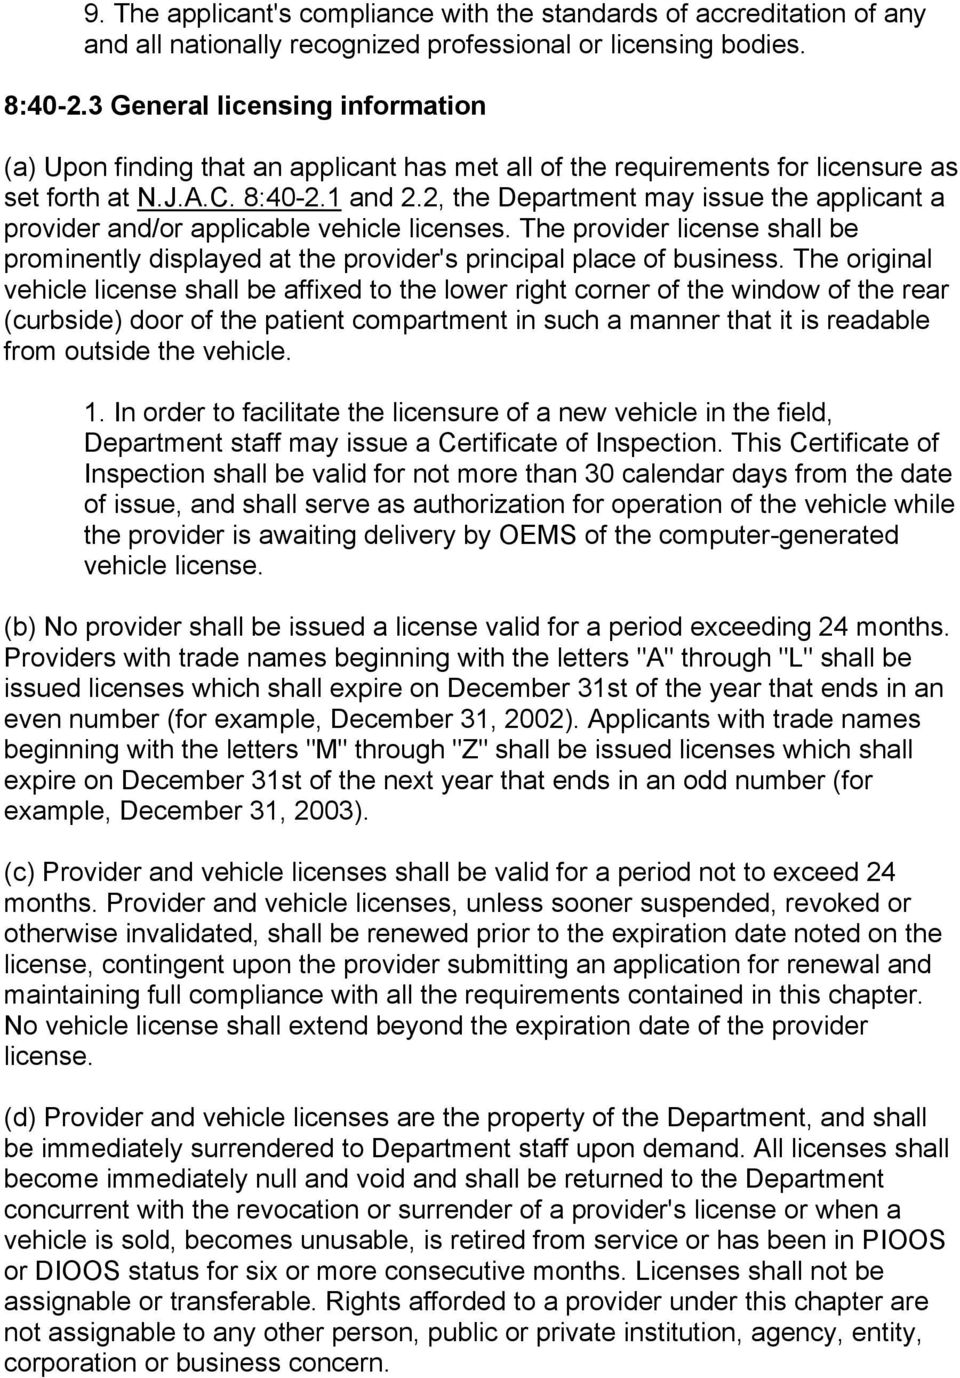 2, the Department may issue the applicant a provider and/or applicable vehicle licenses. The provider license shall be prominently displayed at the provider's principal place of business.